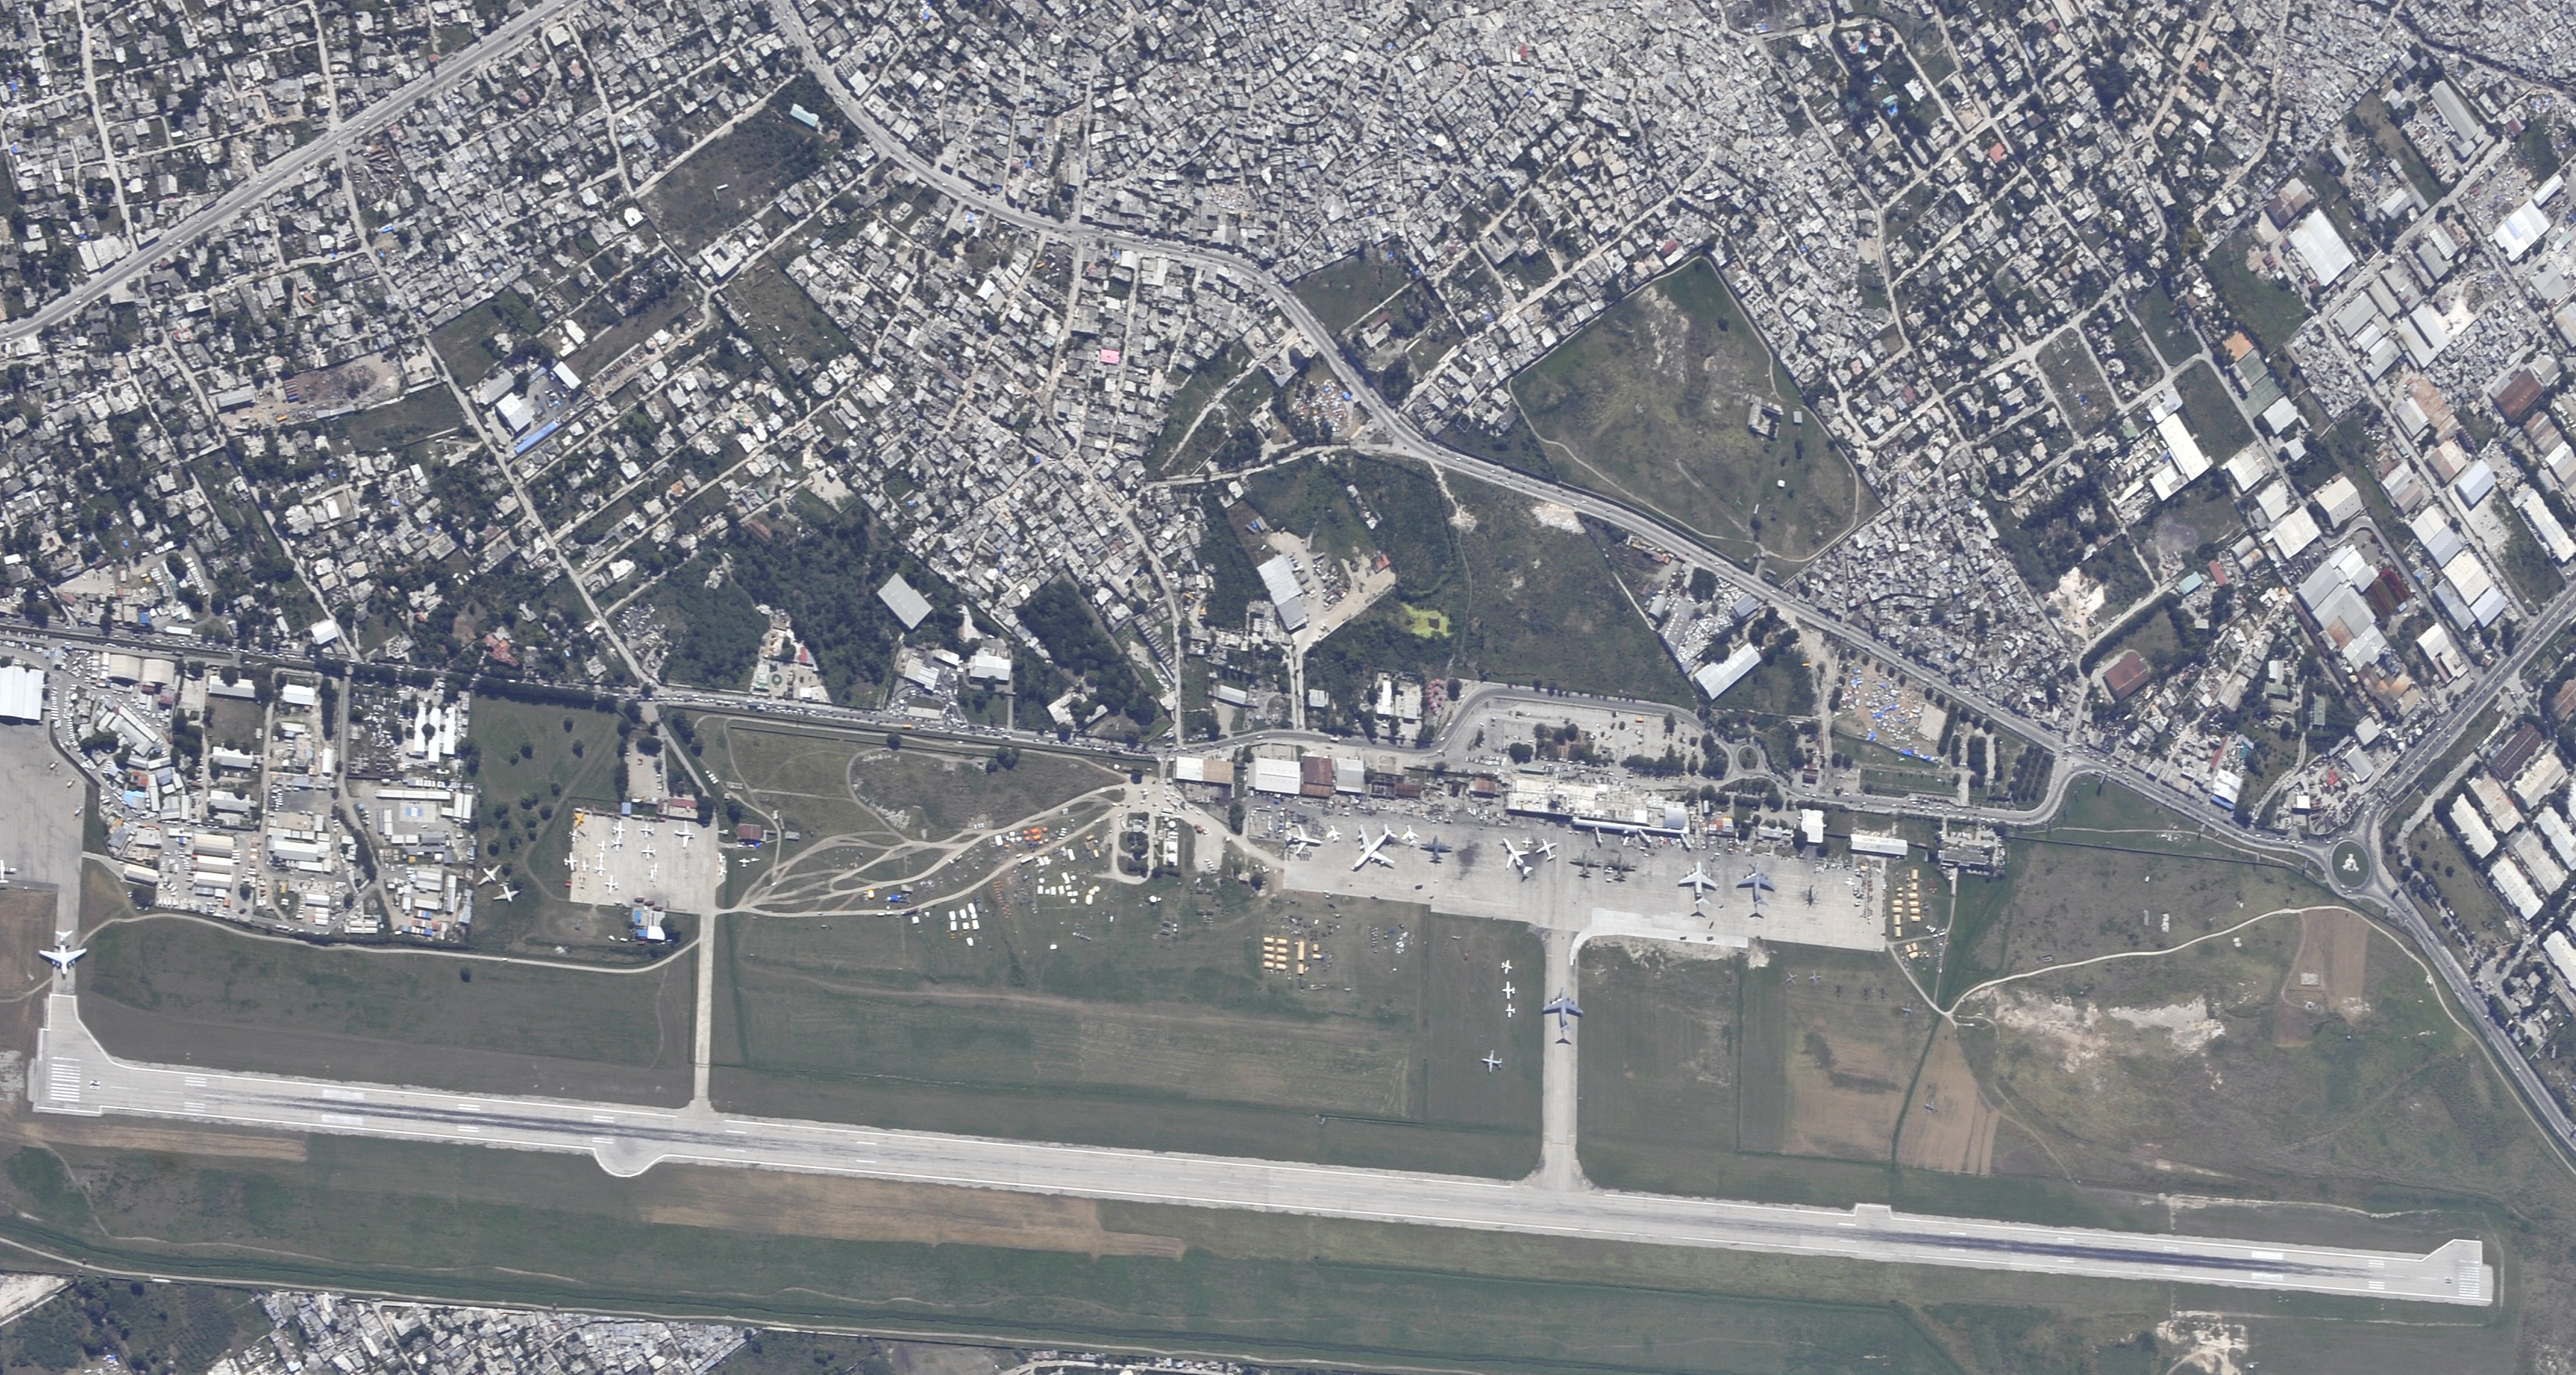 Aerial view of PAP 2010-01-16 2